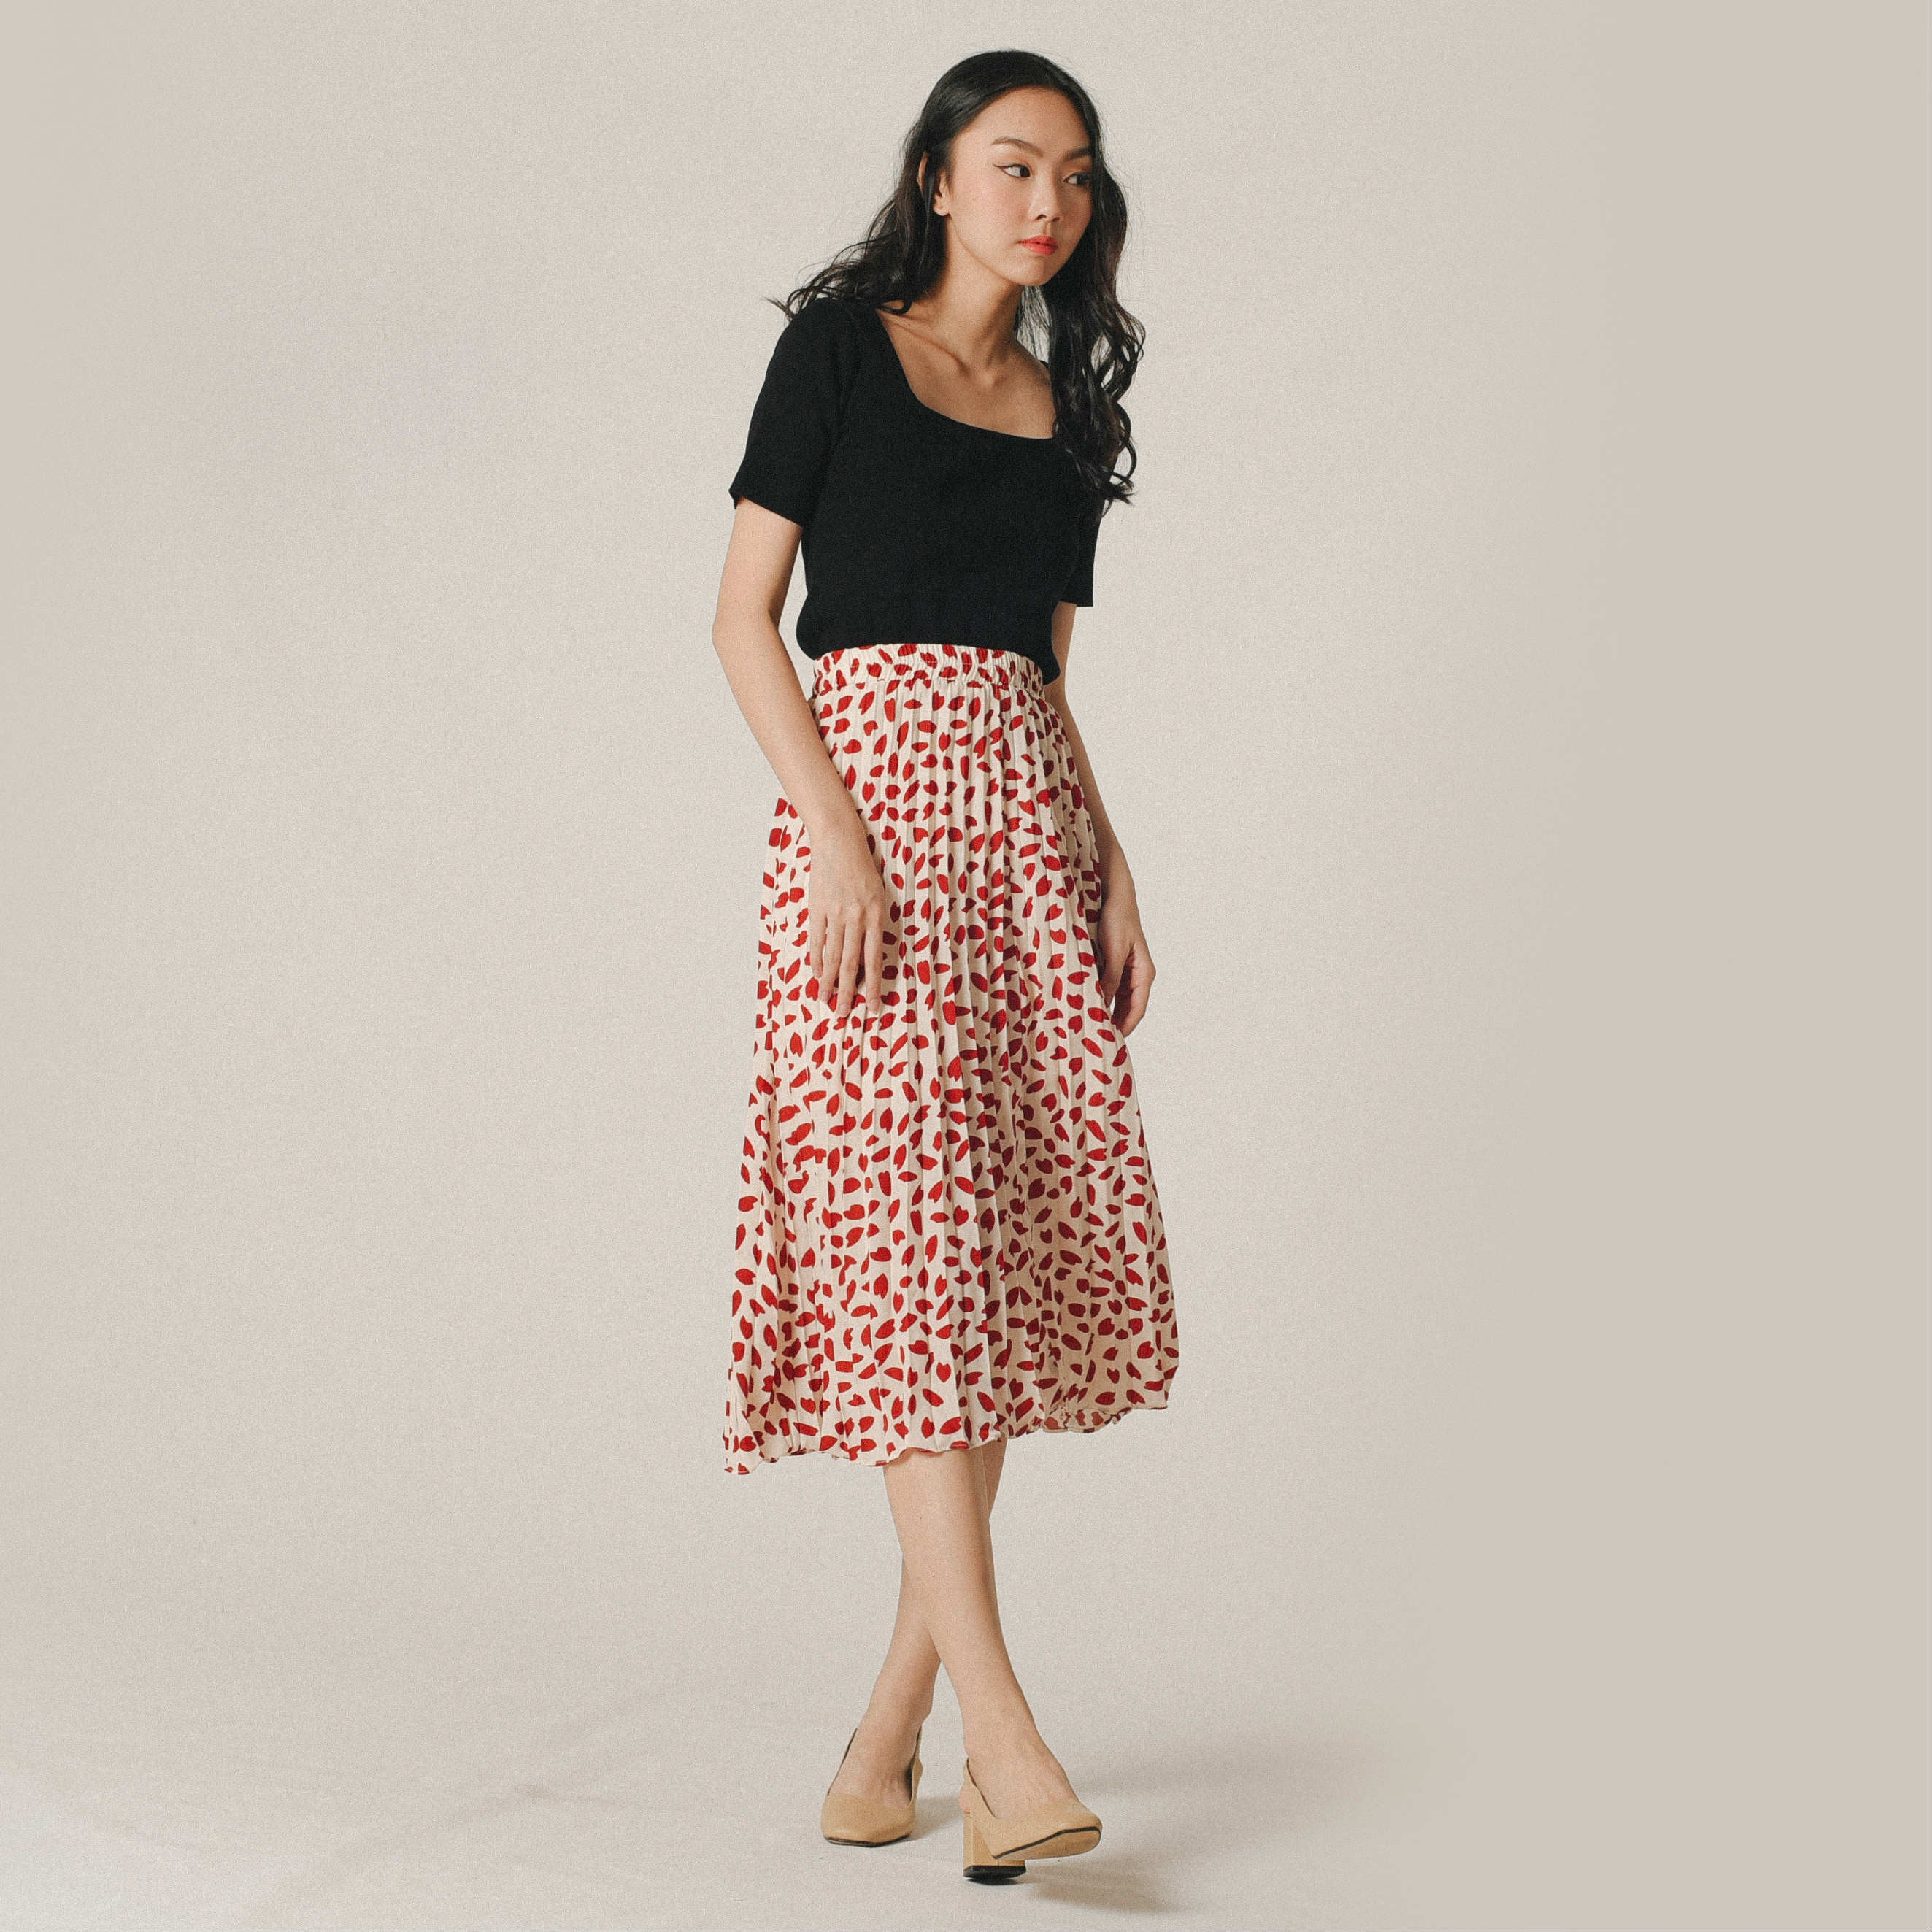 Chrissy Print Skirt - Red & White